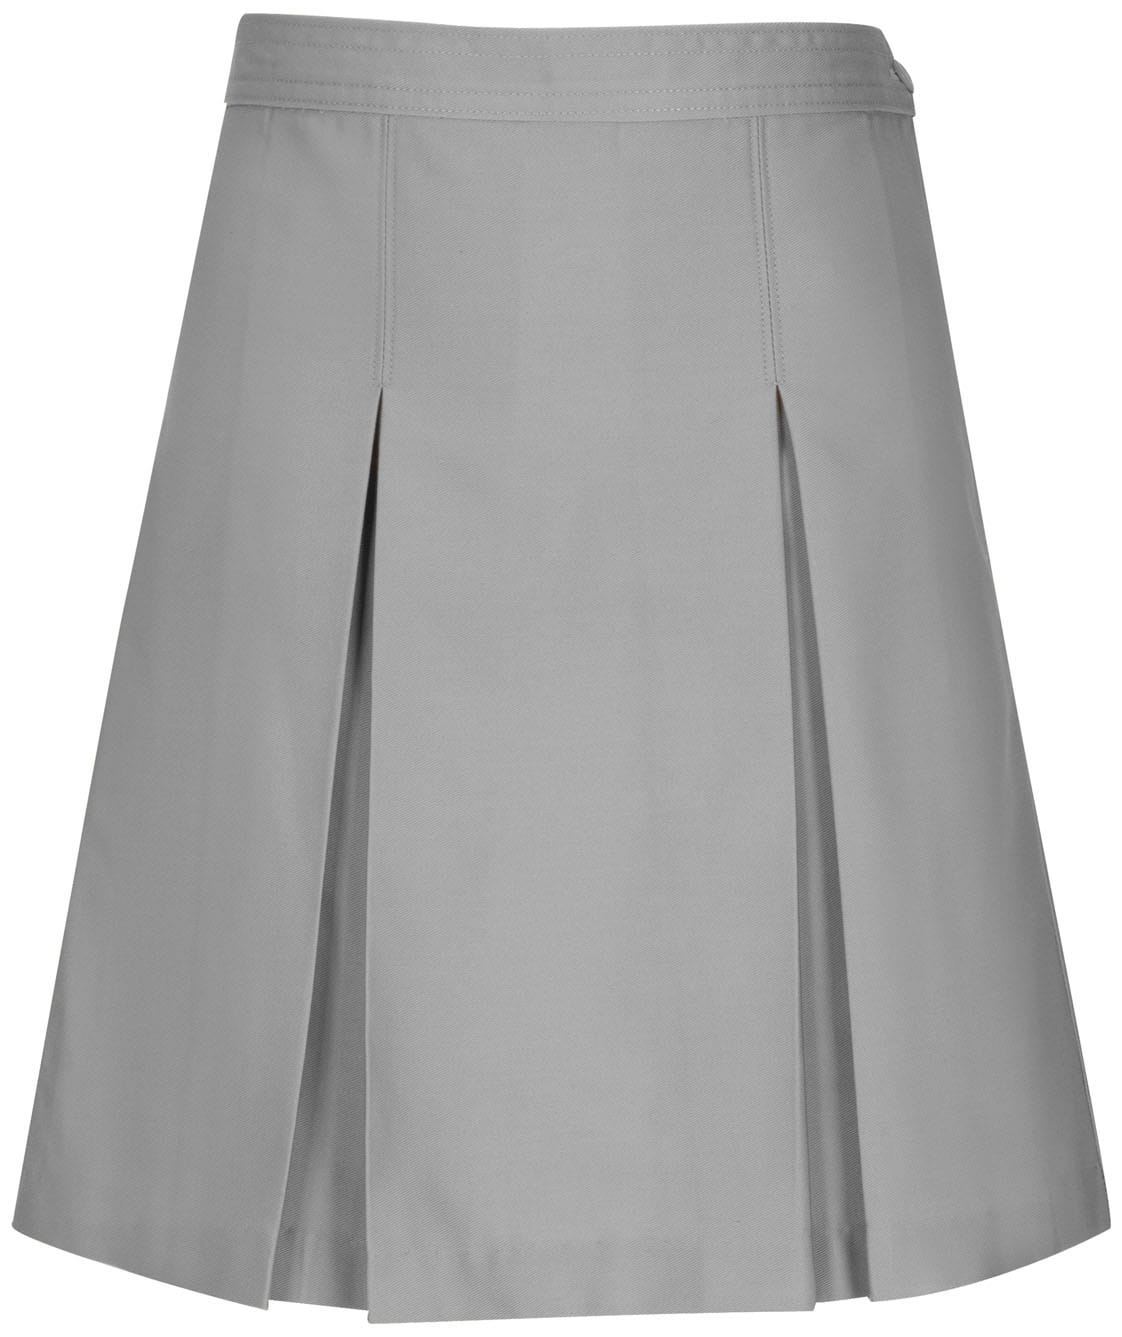 Kick Pleat Skirt - Charter School of Excellence - Gray